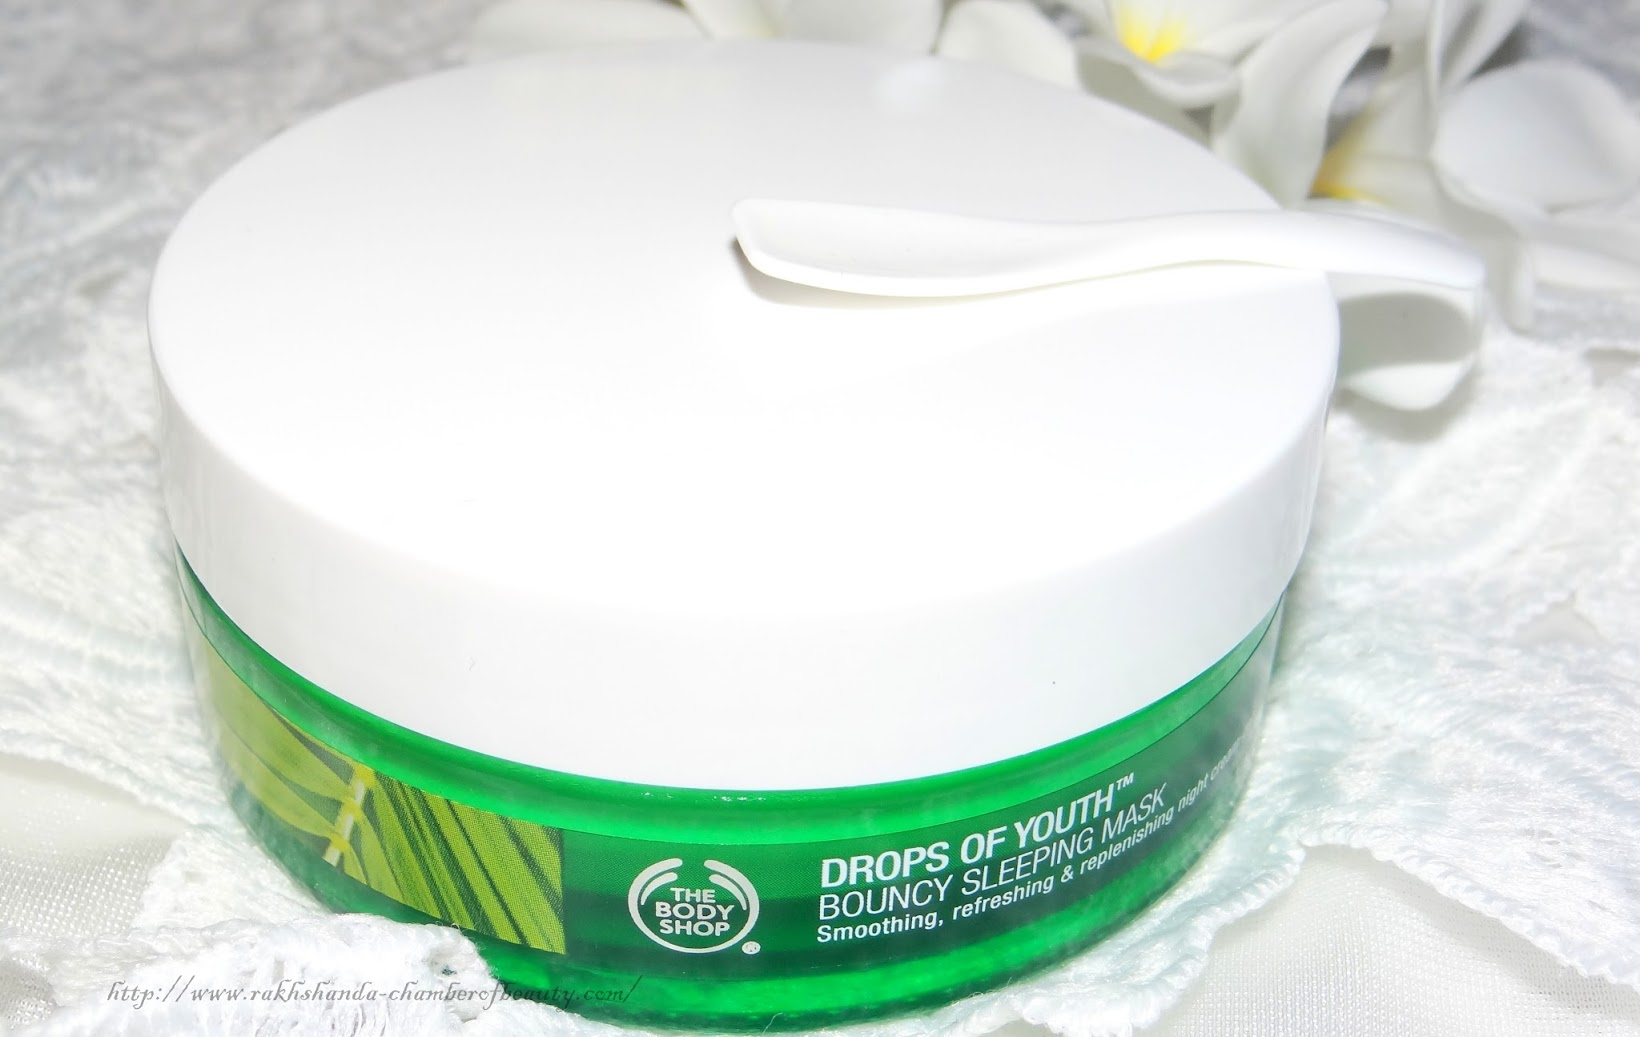 The Body Shop Drops of Youth Bouncy Sleeping mask- Review, Photos, Price